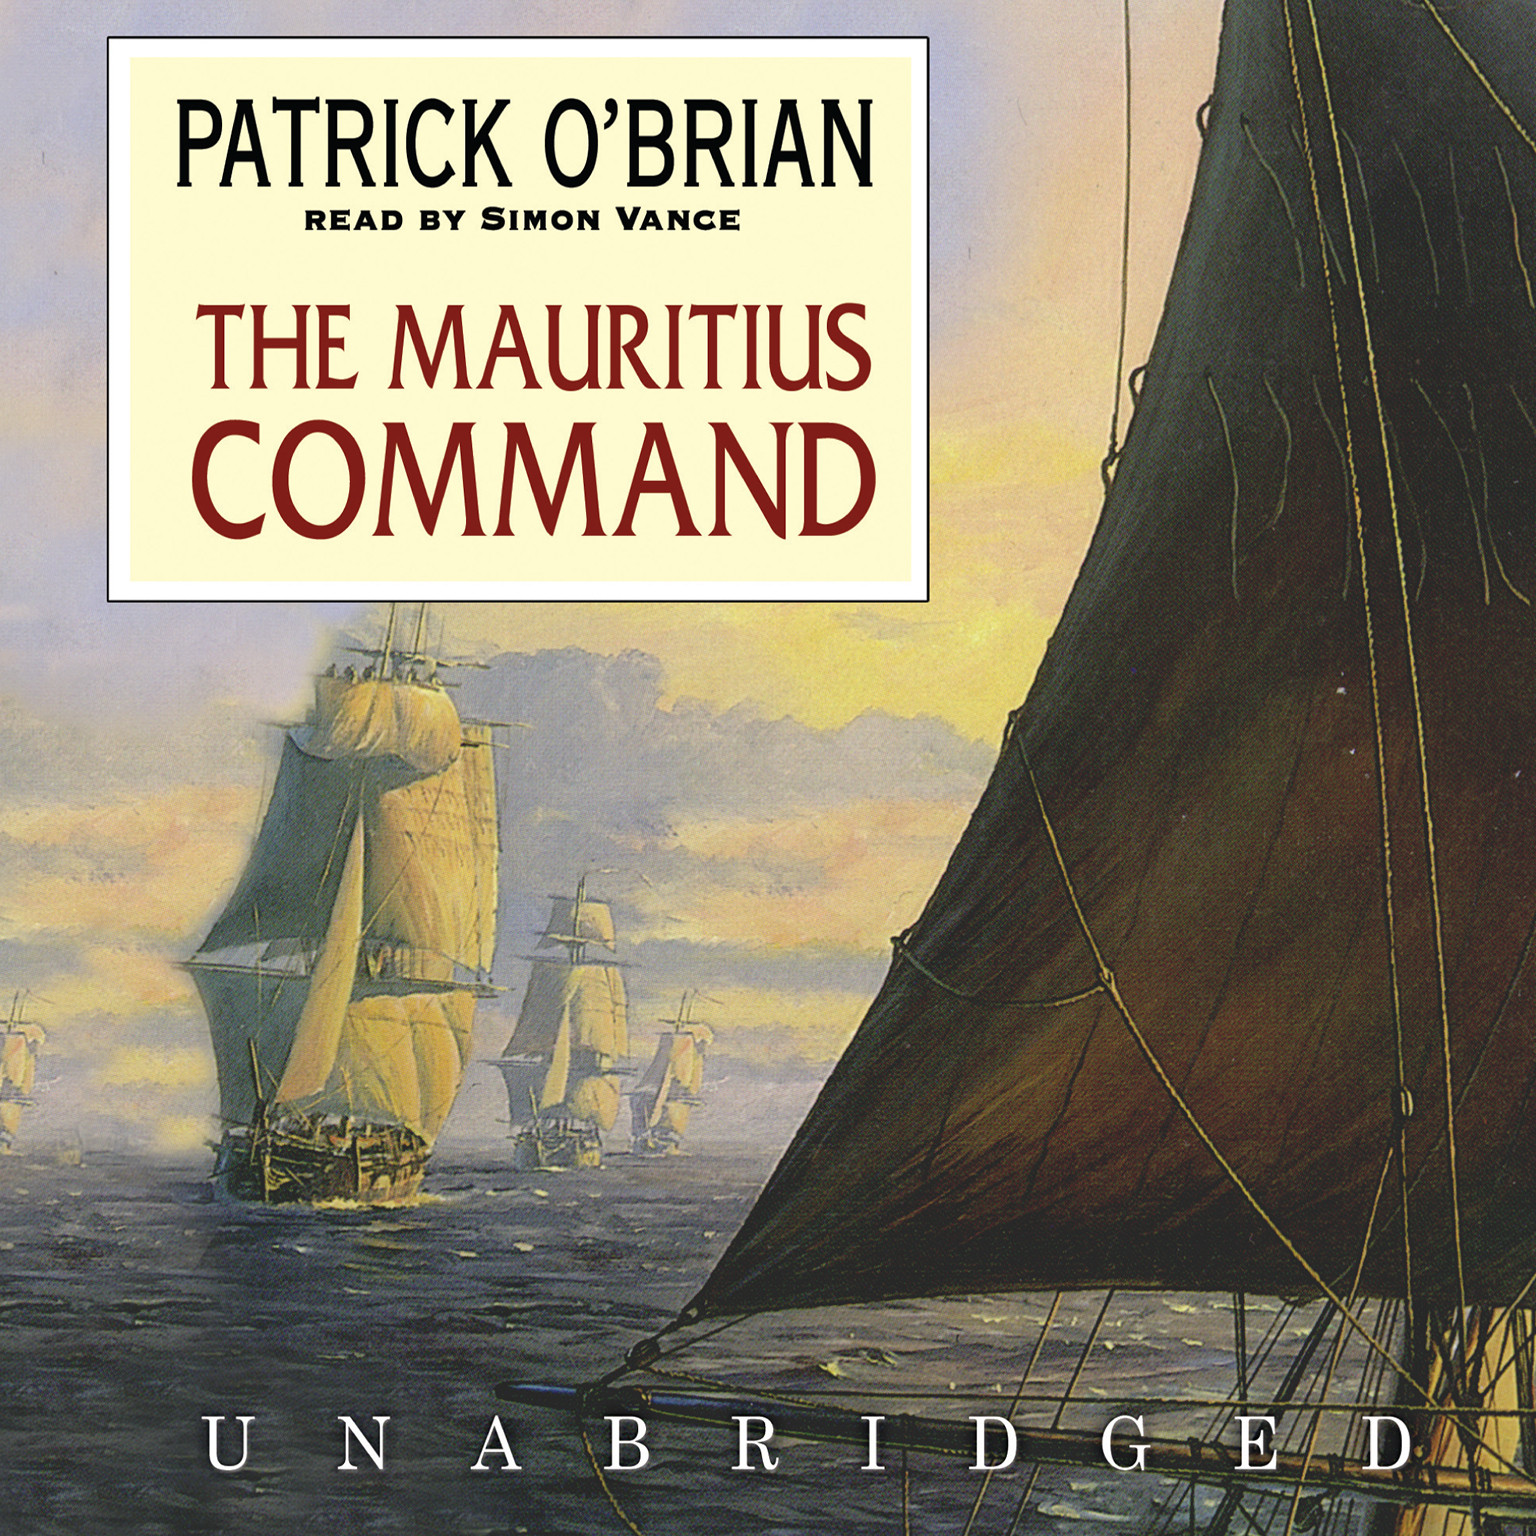 Mauritian Cookbook Cover : Hear the mauritius command audiobook by patrick o brian